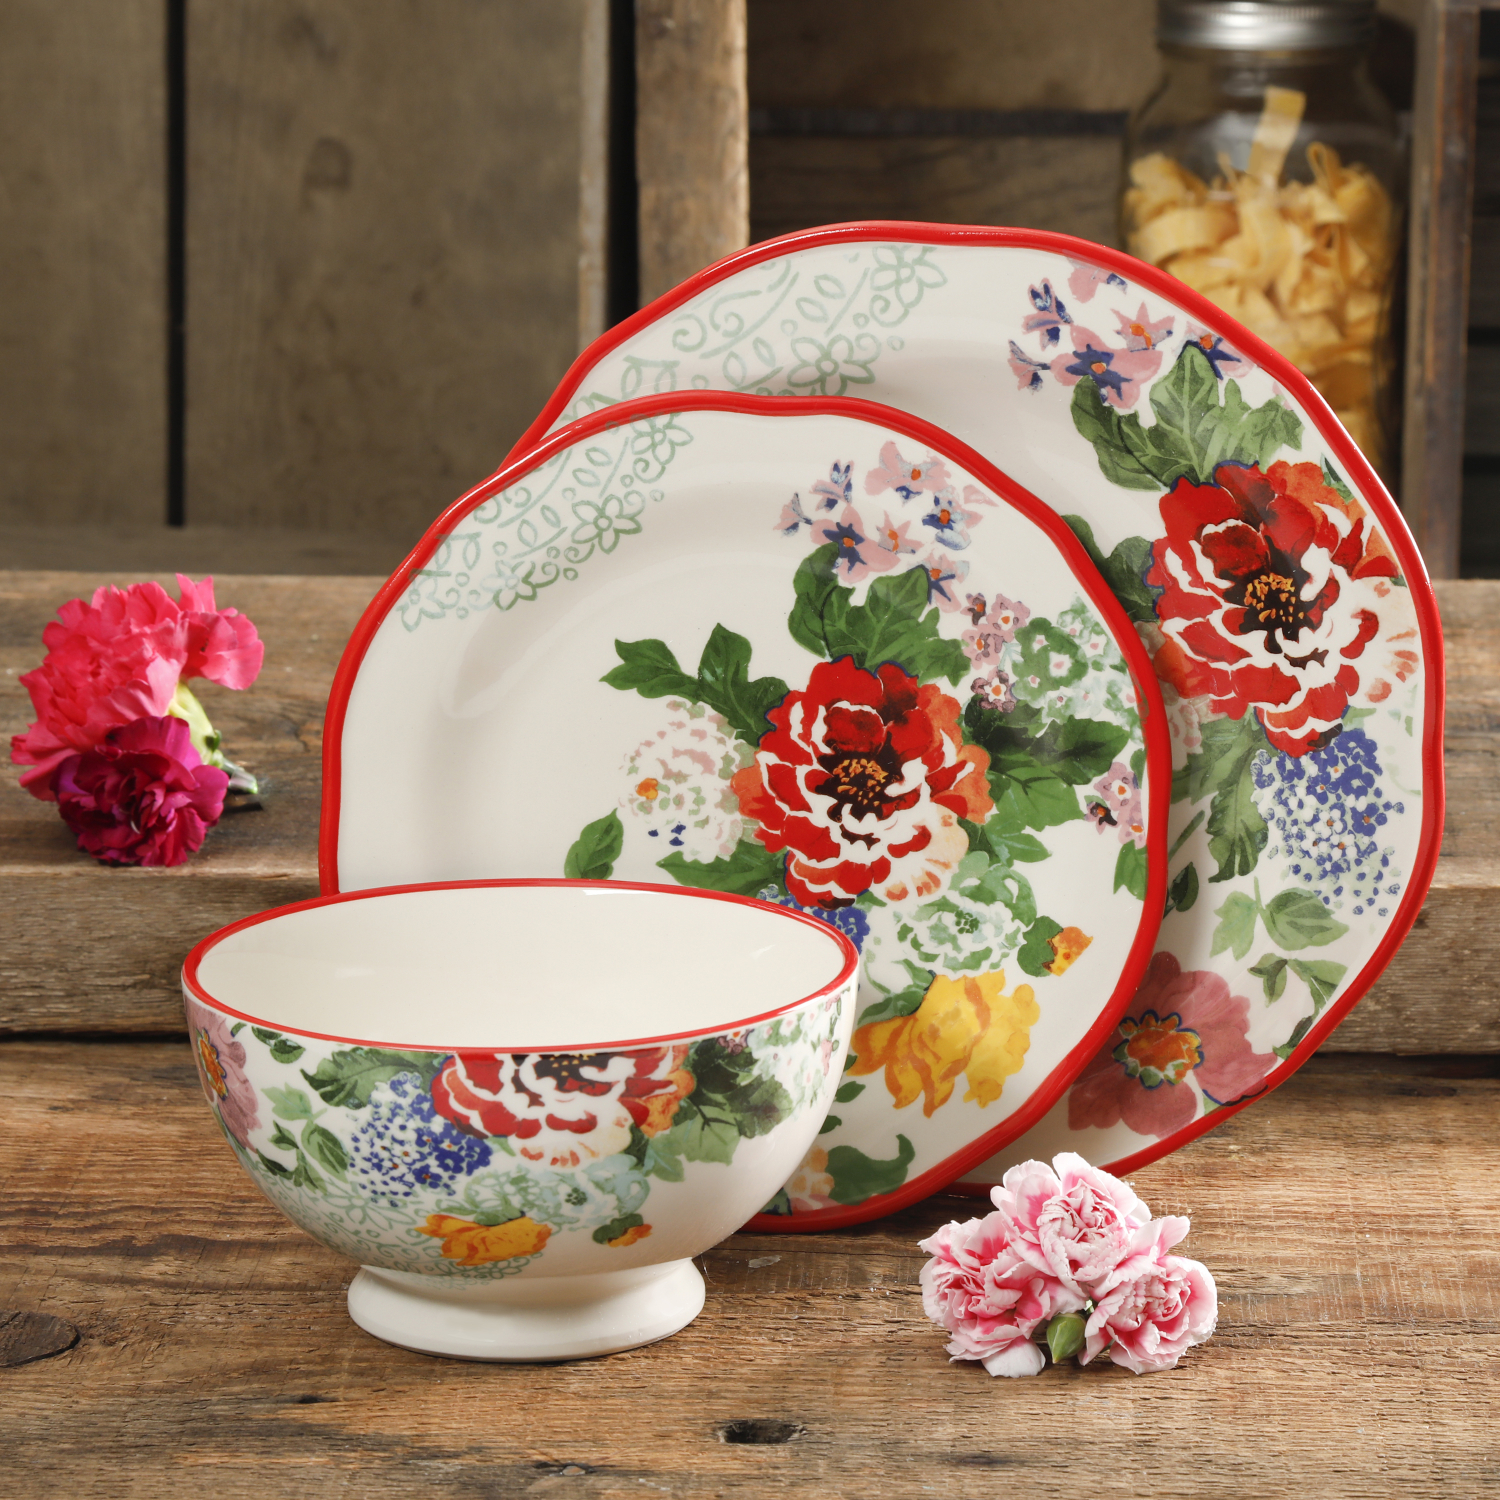 The Pioneer Woman Vintage Floral 12 Pc Dinnerware Set Service for 4 Plate New